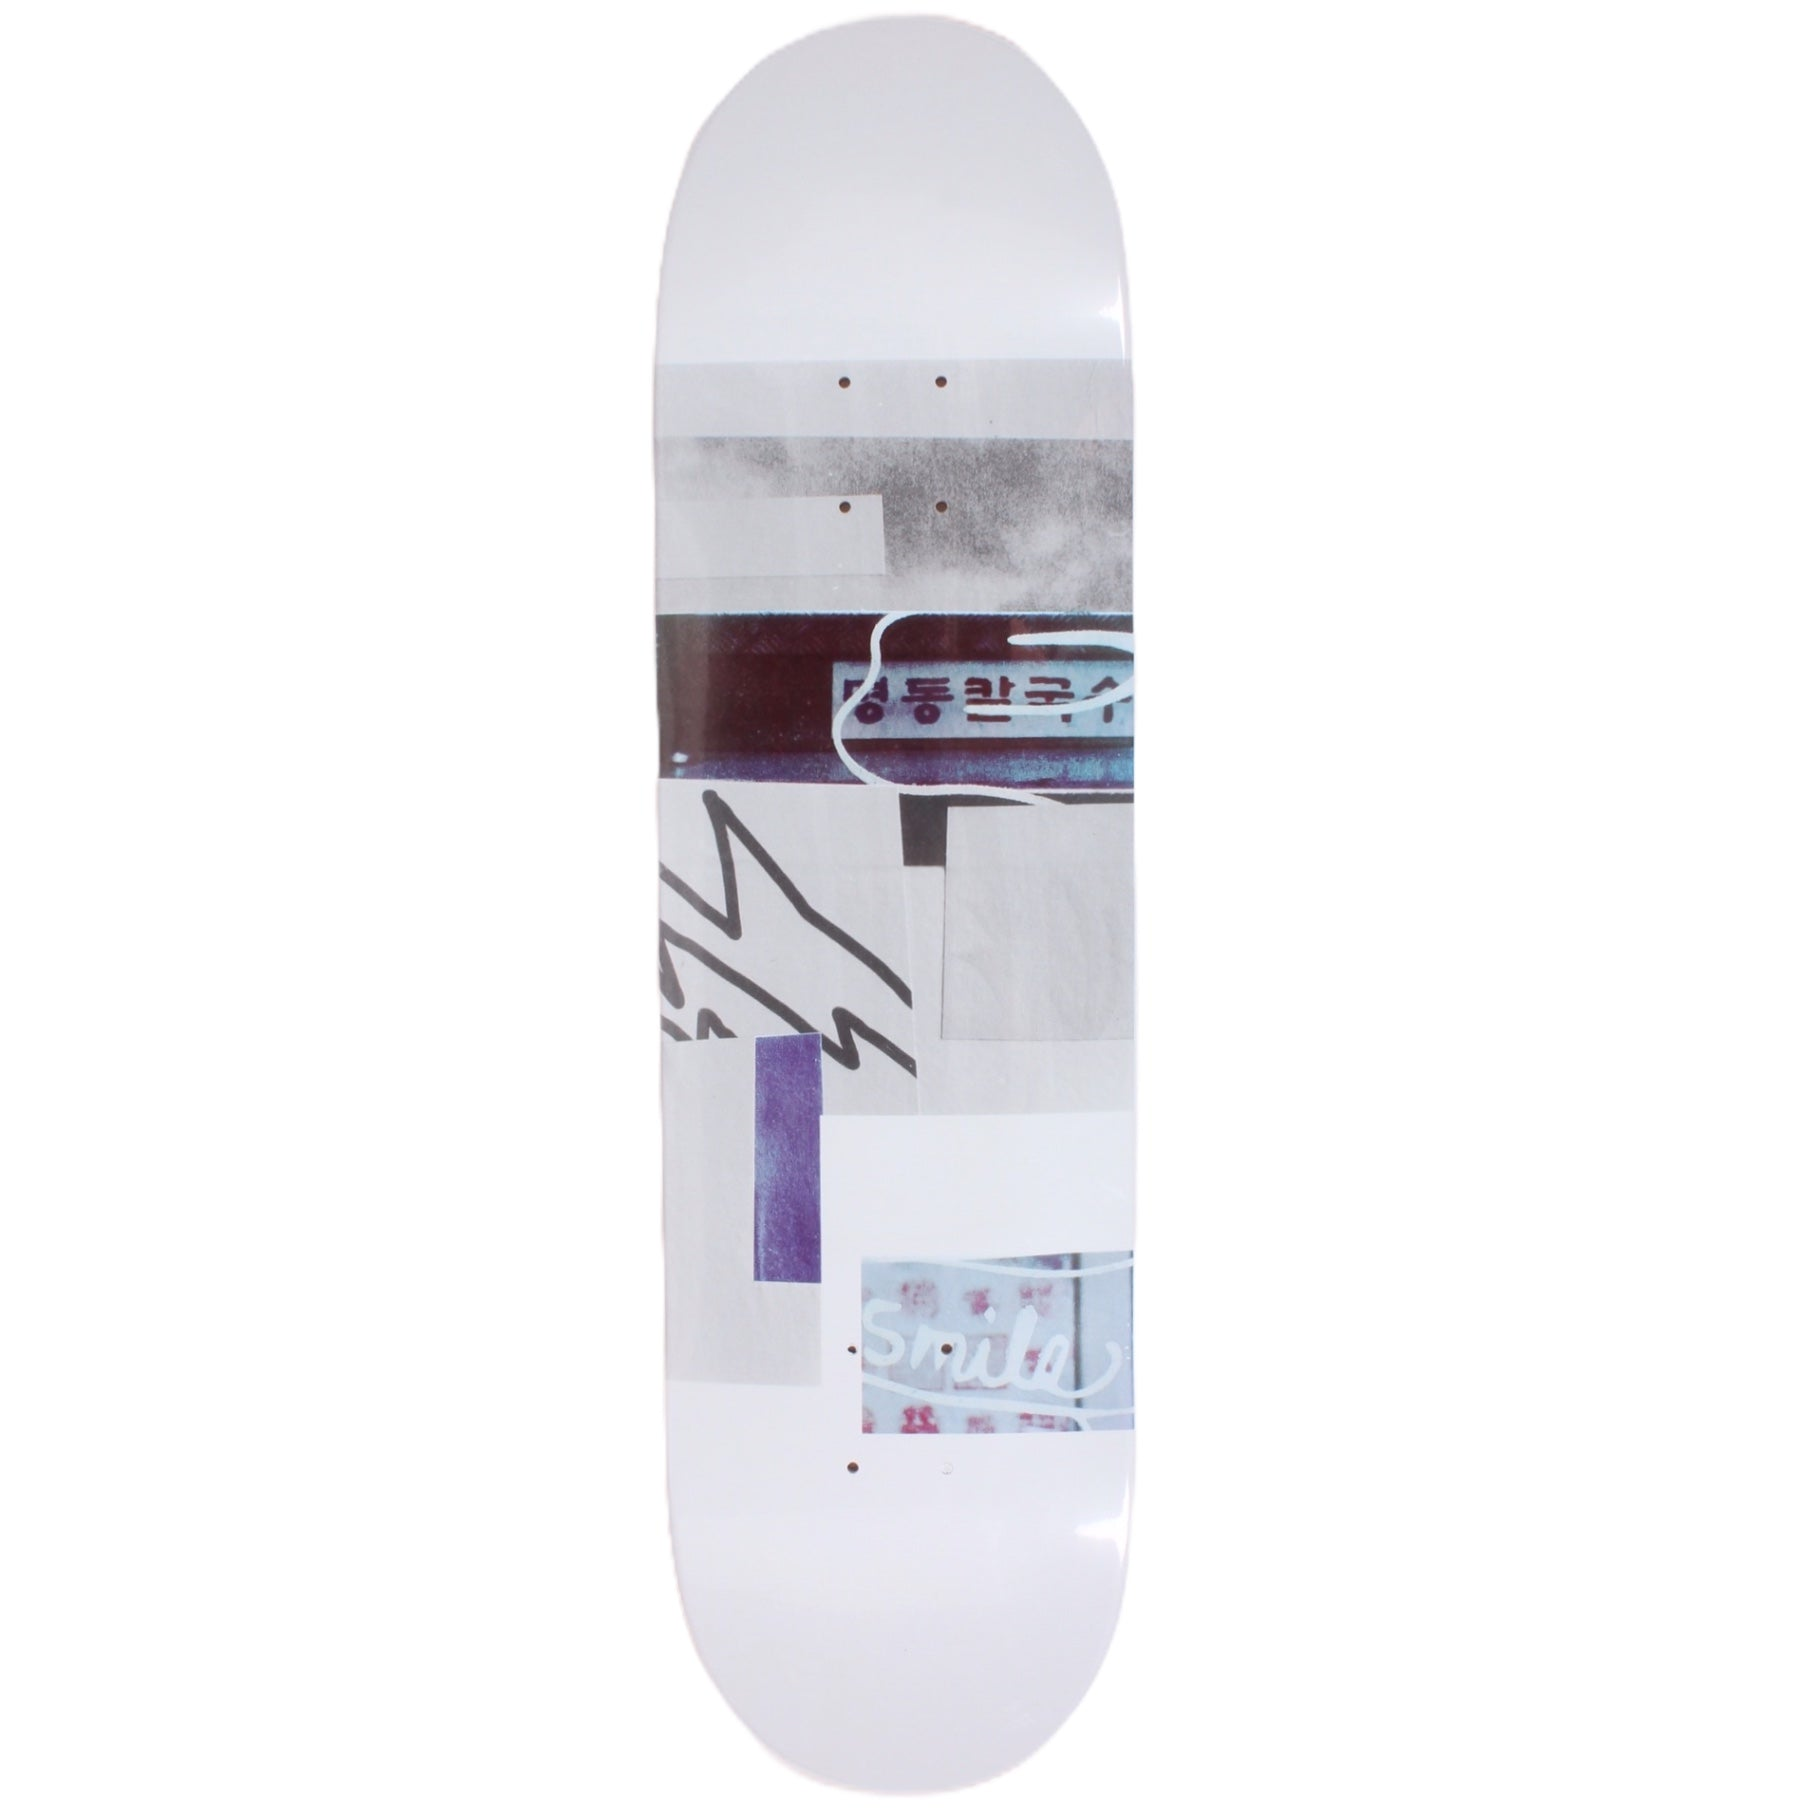 Oyster Smile Deck 8.25""